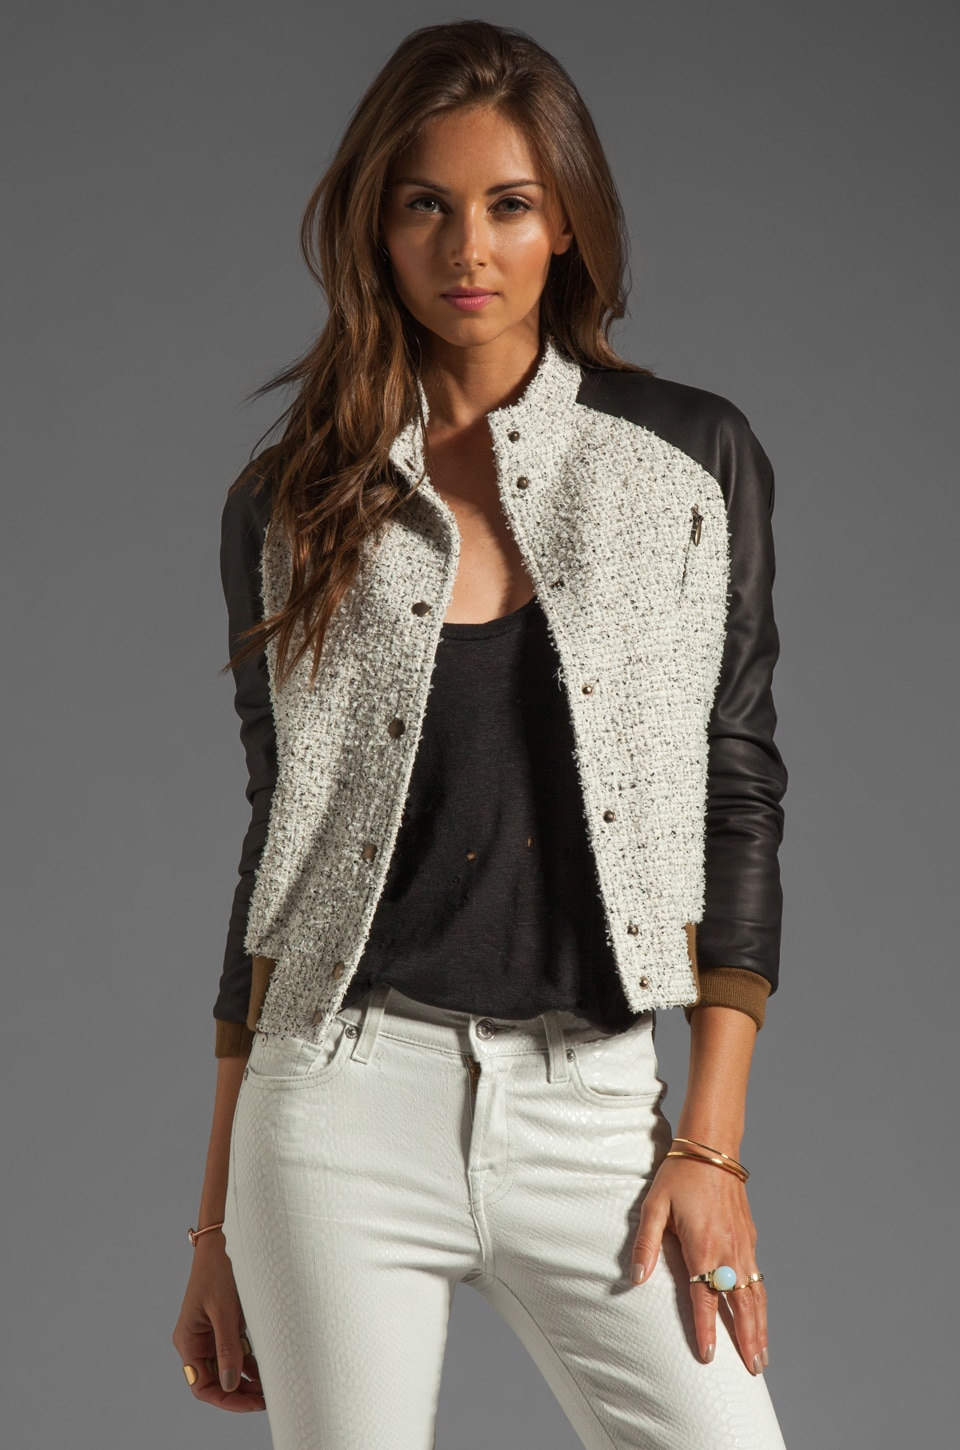 ROSEanna Paris Jacket with Leather Sleeves in Ecru